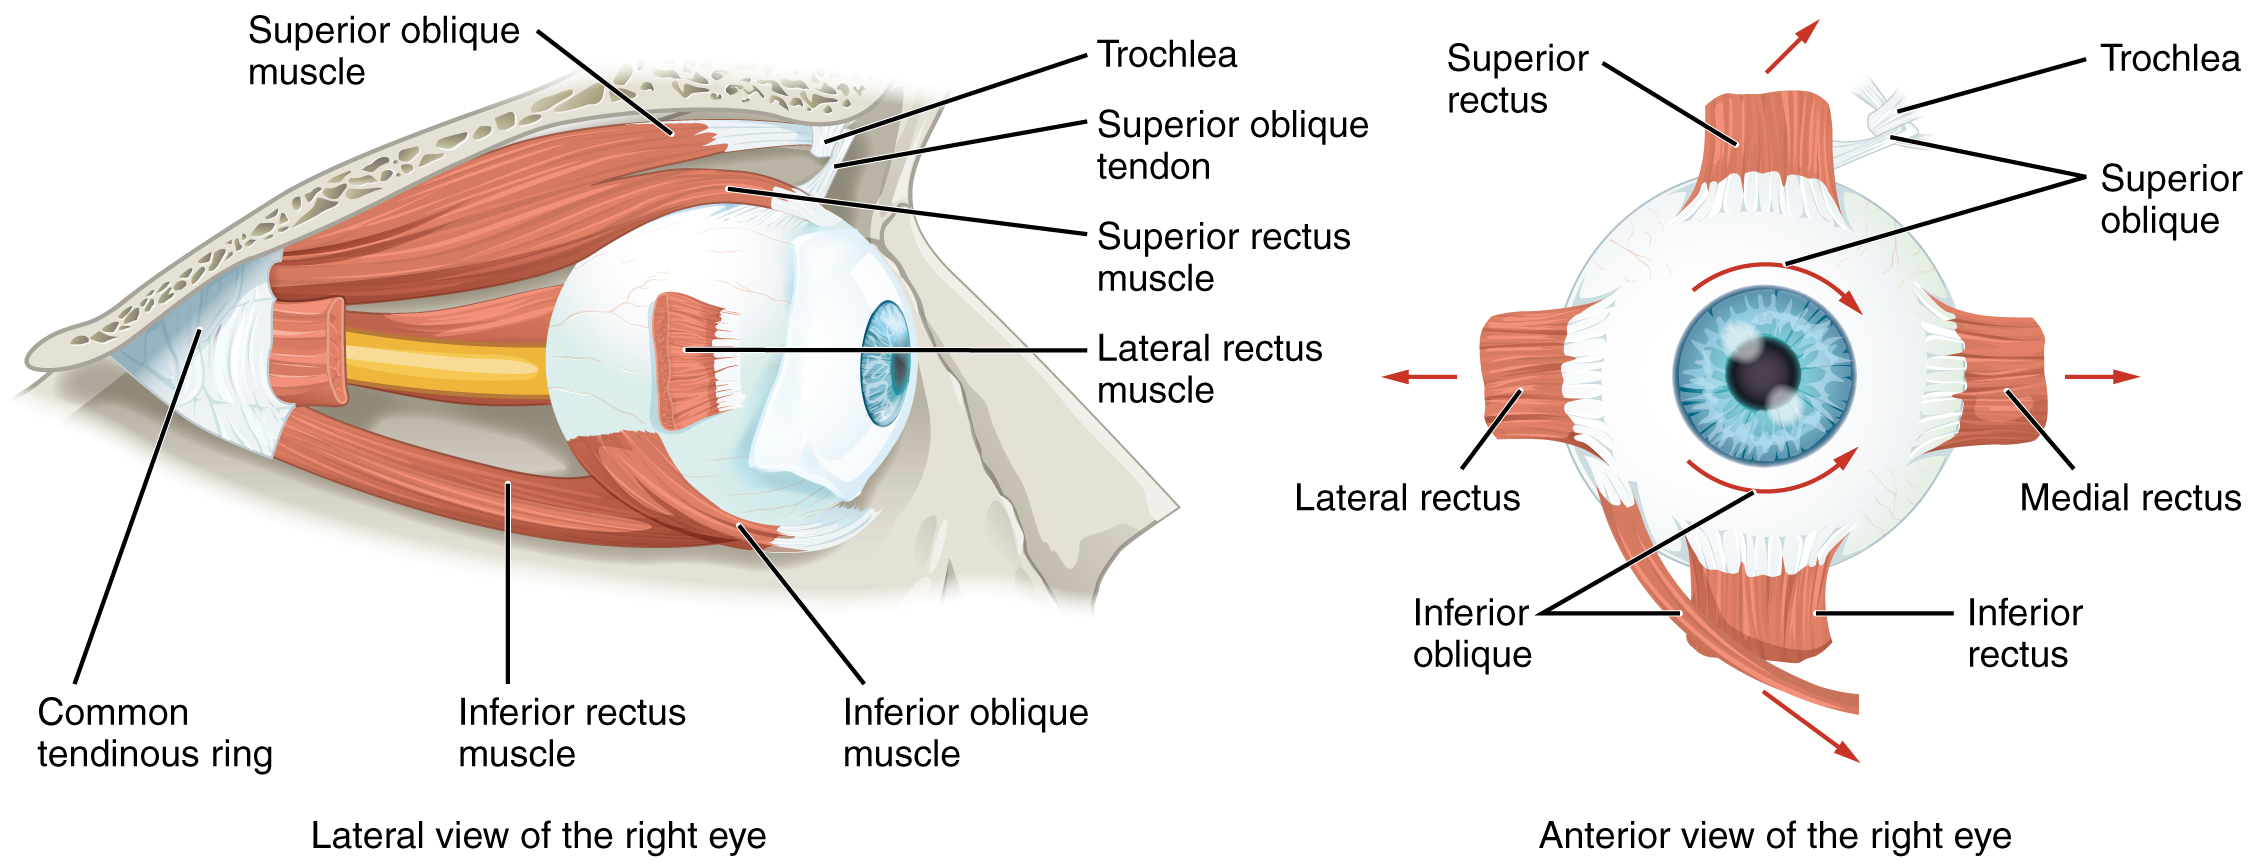 parts of the eyelid diagram 2005 volvo xc90 wiring anatomy eye and extraocular muscles radiology